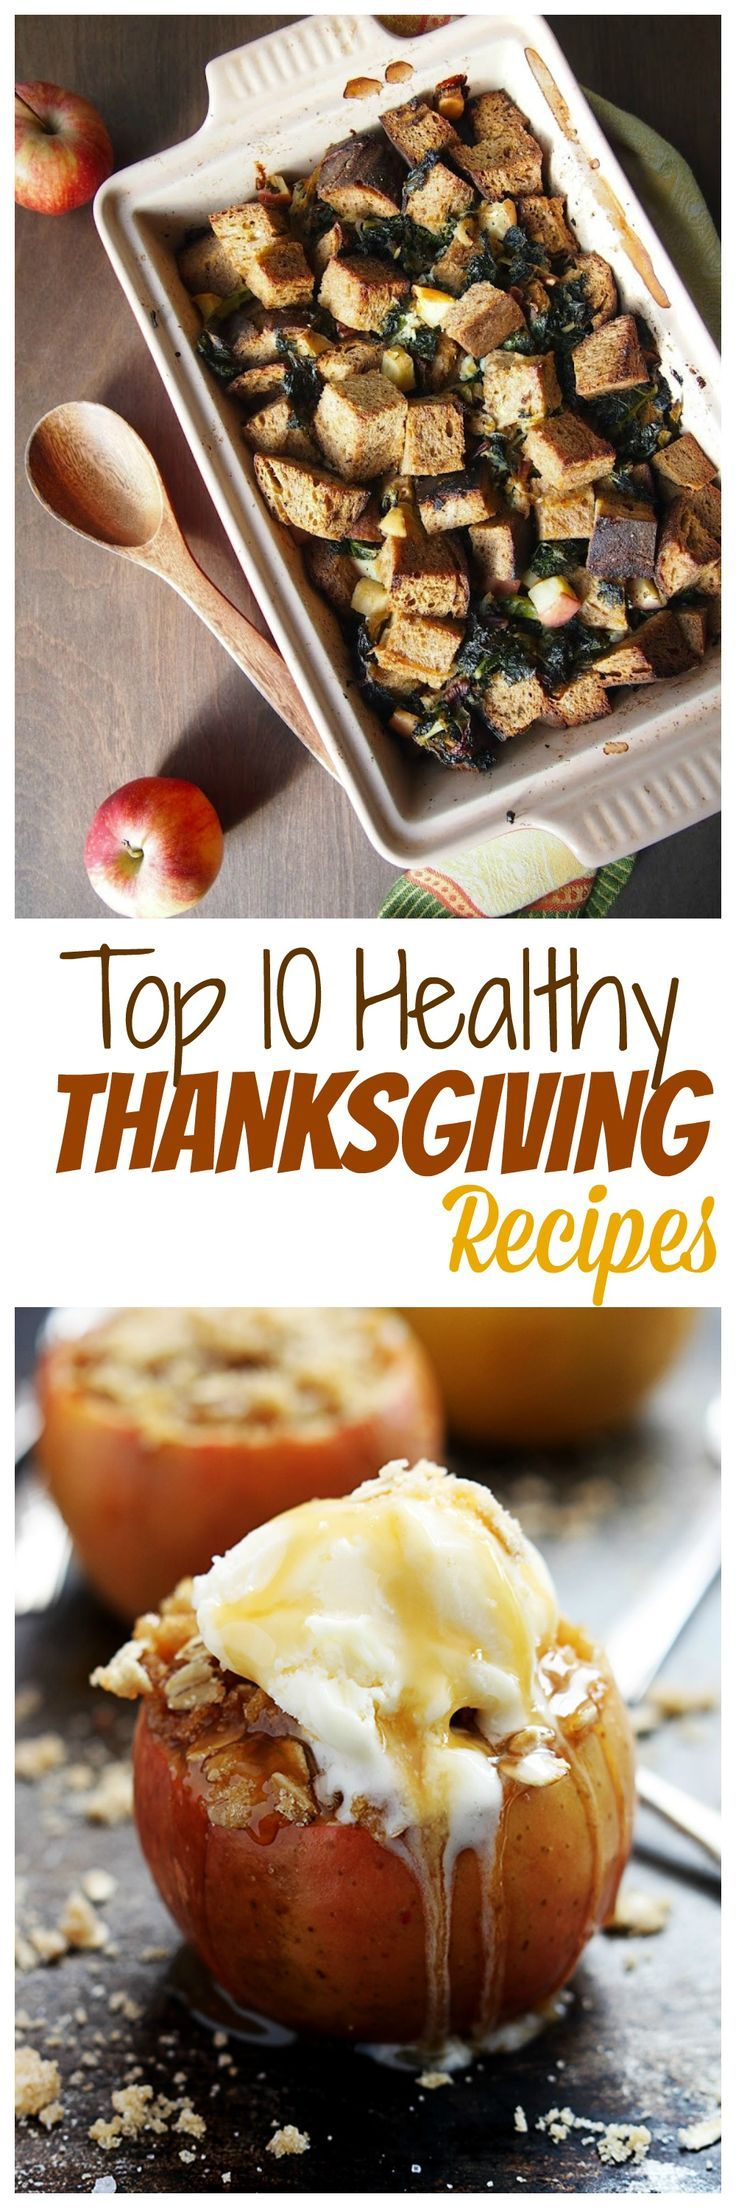 Check out my #foodielicious list of the Best Healthy Thanksgiving #recipes! Thanks to all of my fellow bloggers for their recipes (Creme de la Crumb & Avocado A Day Nutrition pictured)!